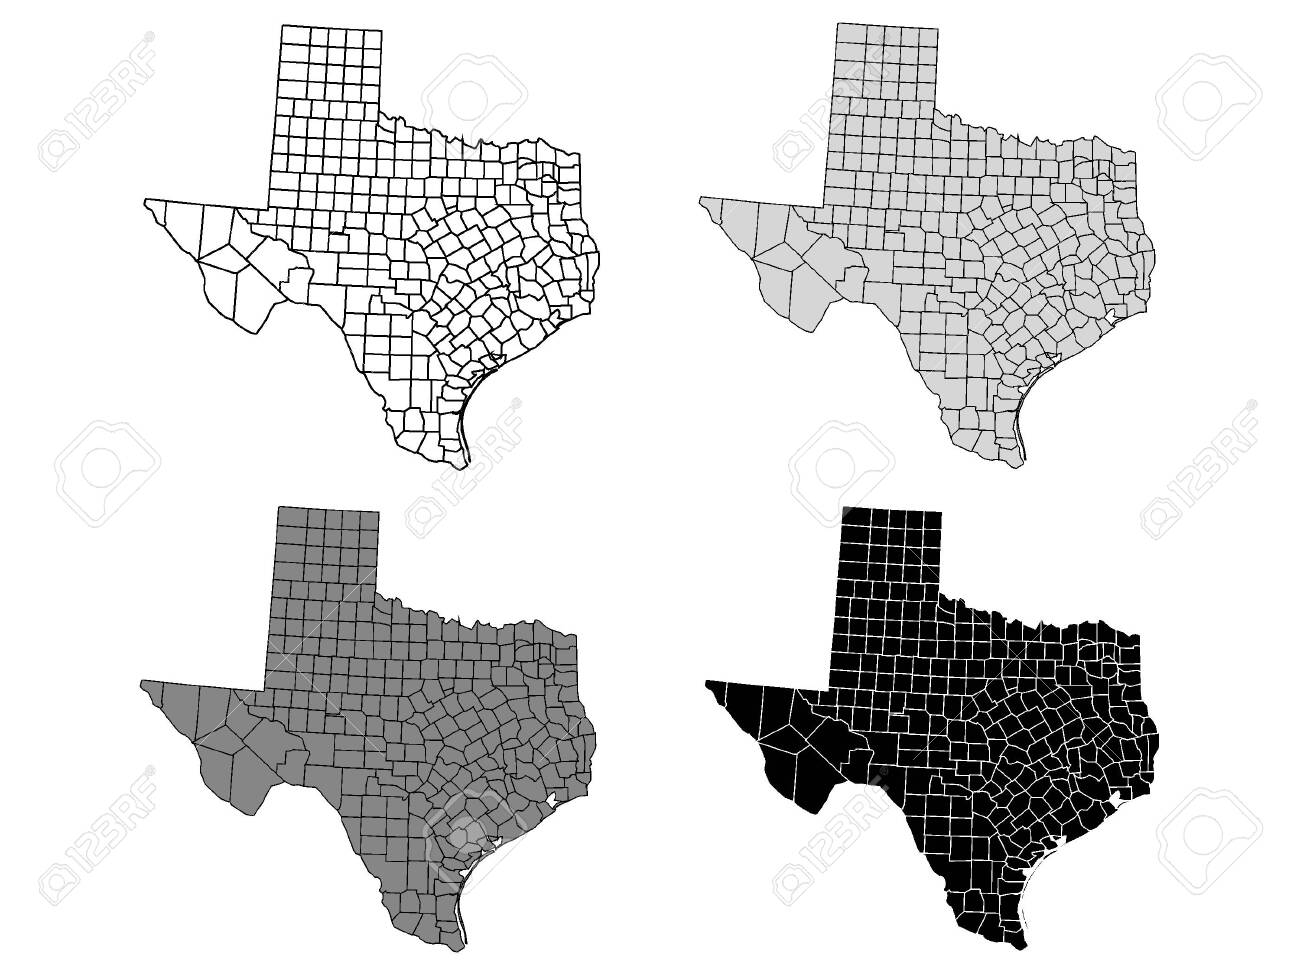 Texas County Map Gray Black White Royalty Free Cliparts